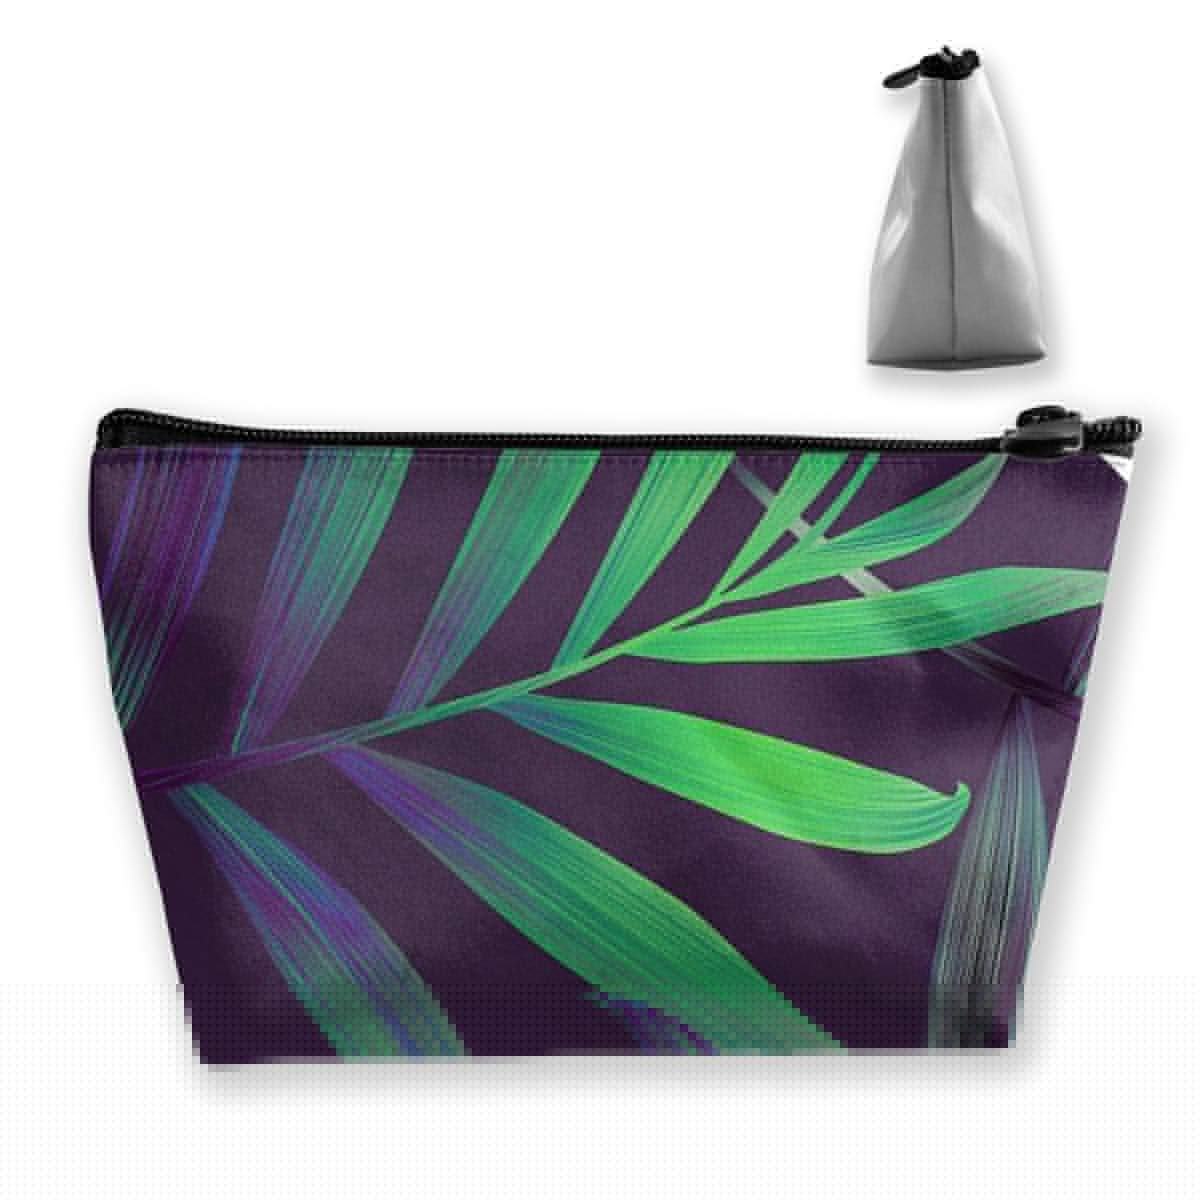 Trapezoid Toiletry Pouch Portable Travel Bag Leaf Pattern Zipper Wallet